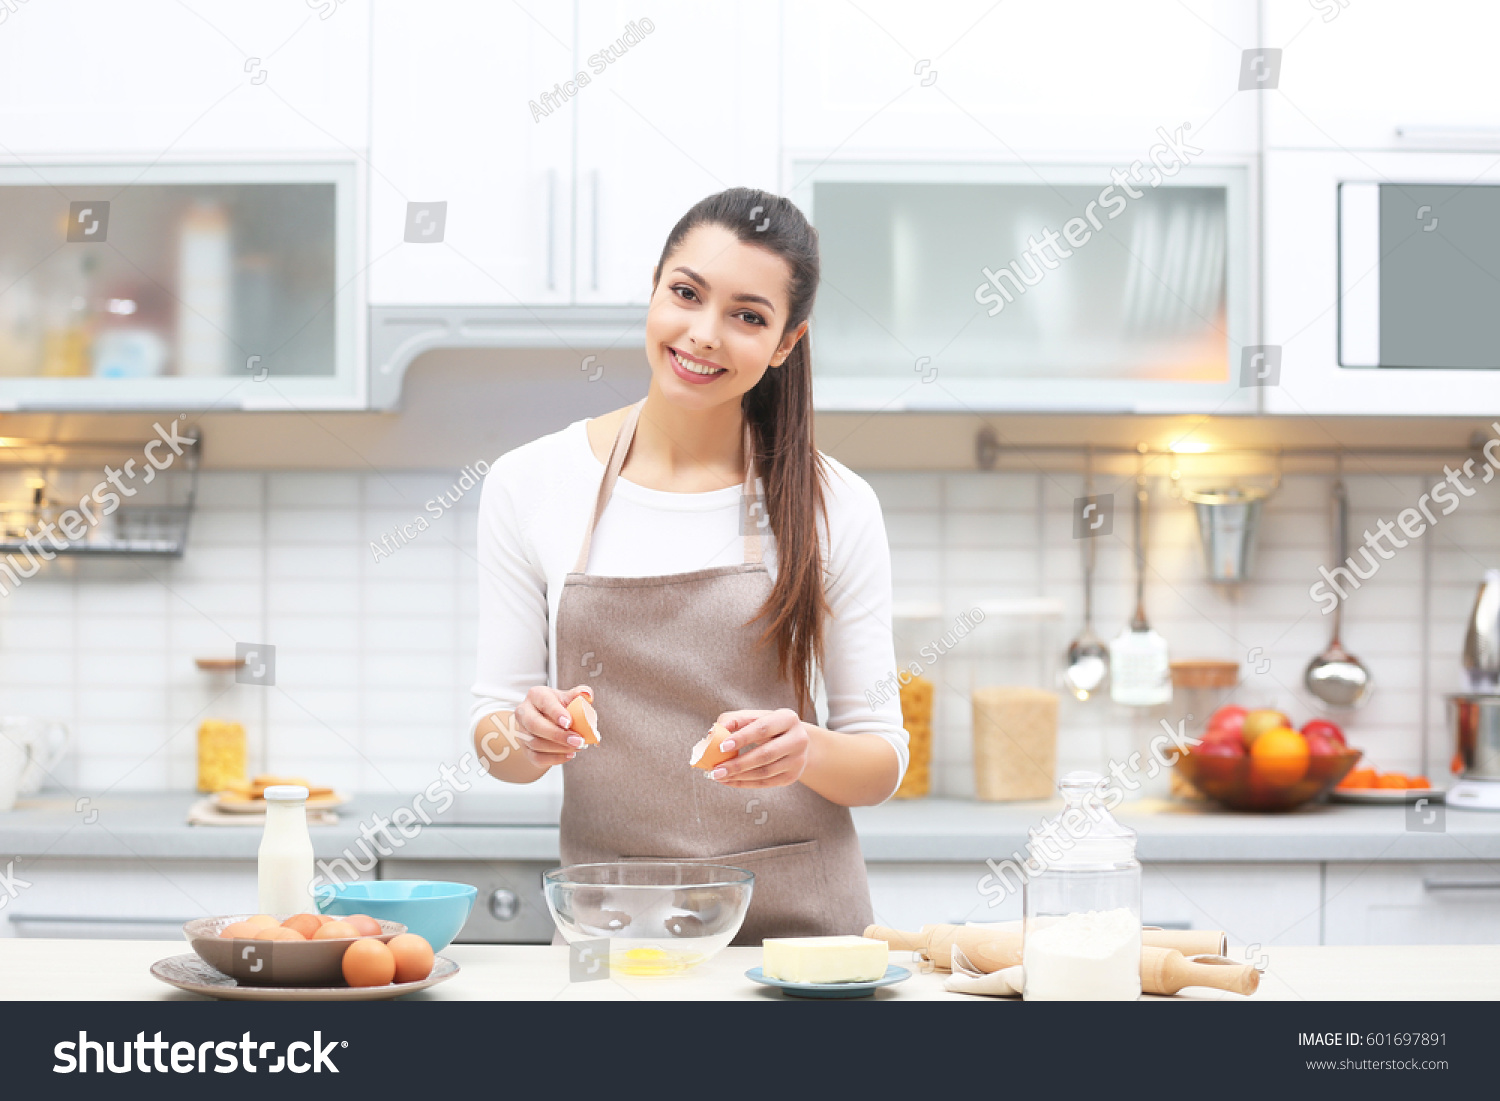 Beautiful Young Woman Cooking Kitchen Stock Photo & Image (Royalty ...